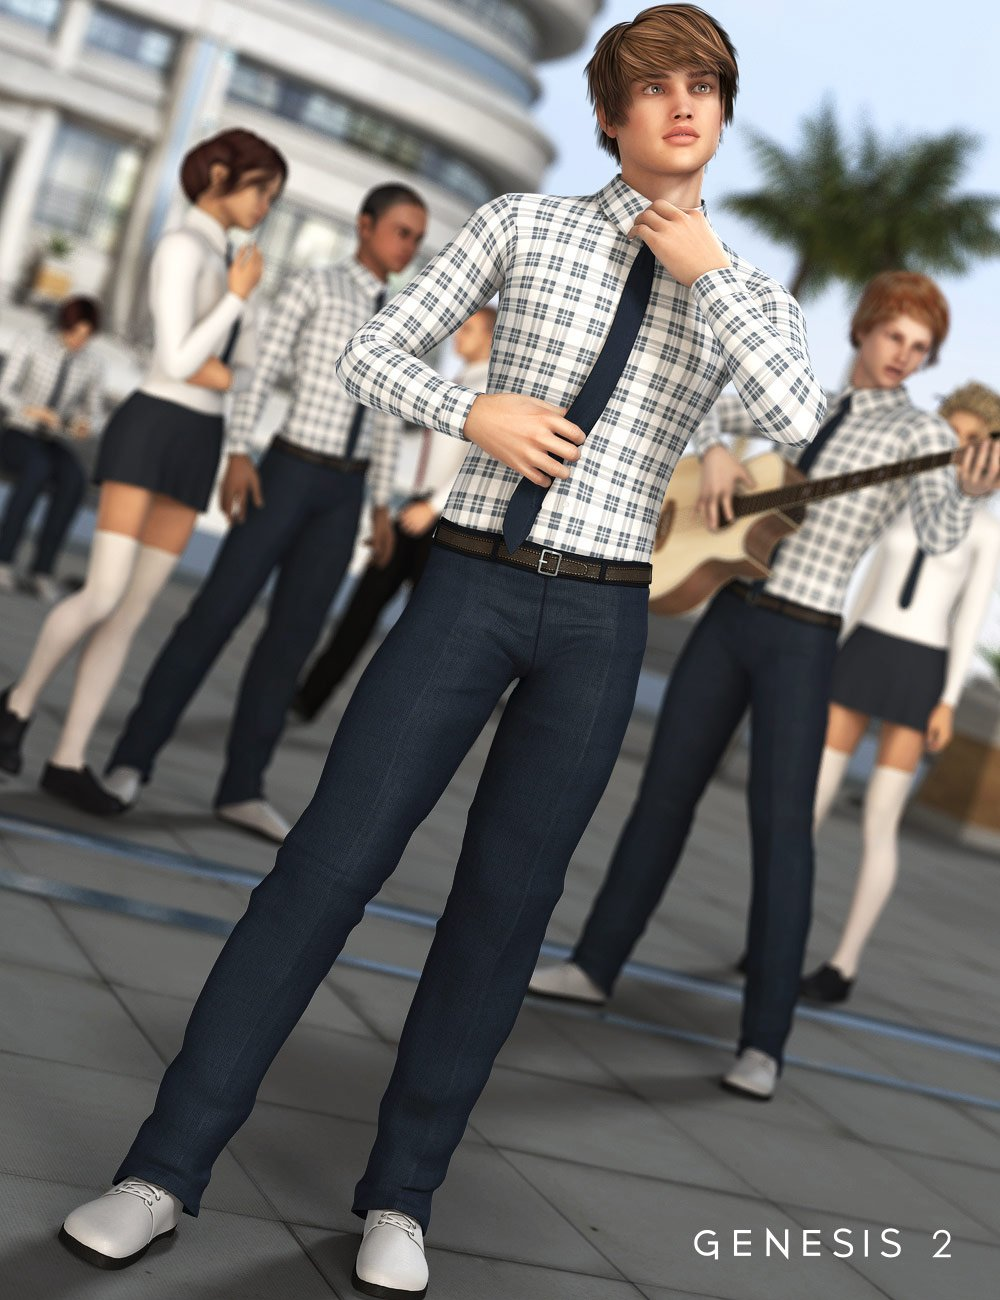 Internship Outfit for Genesis 2 Male(s) by: SarsaXena, 3D Models by Daz 3D